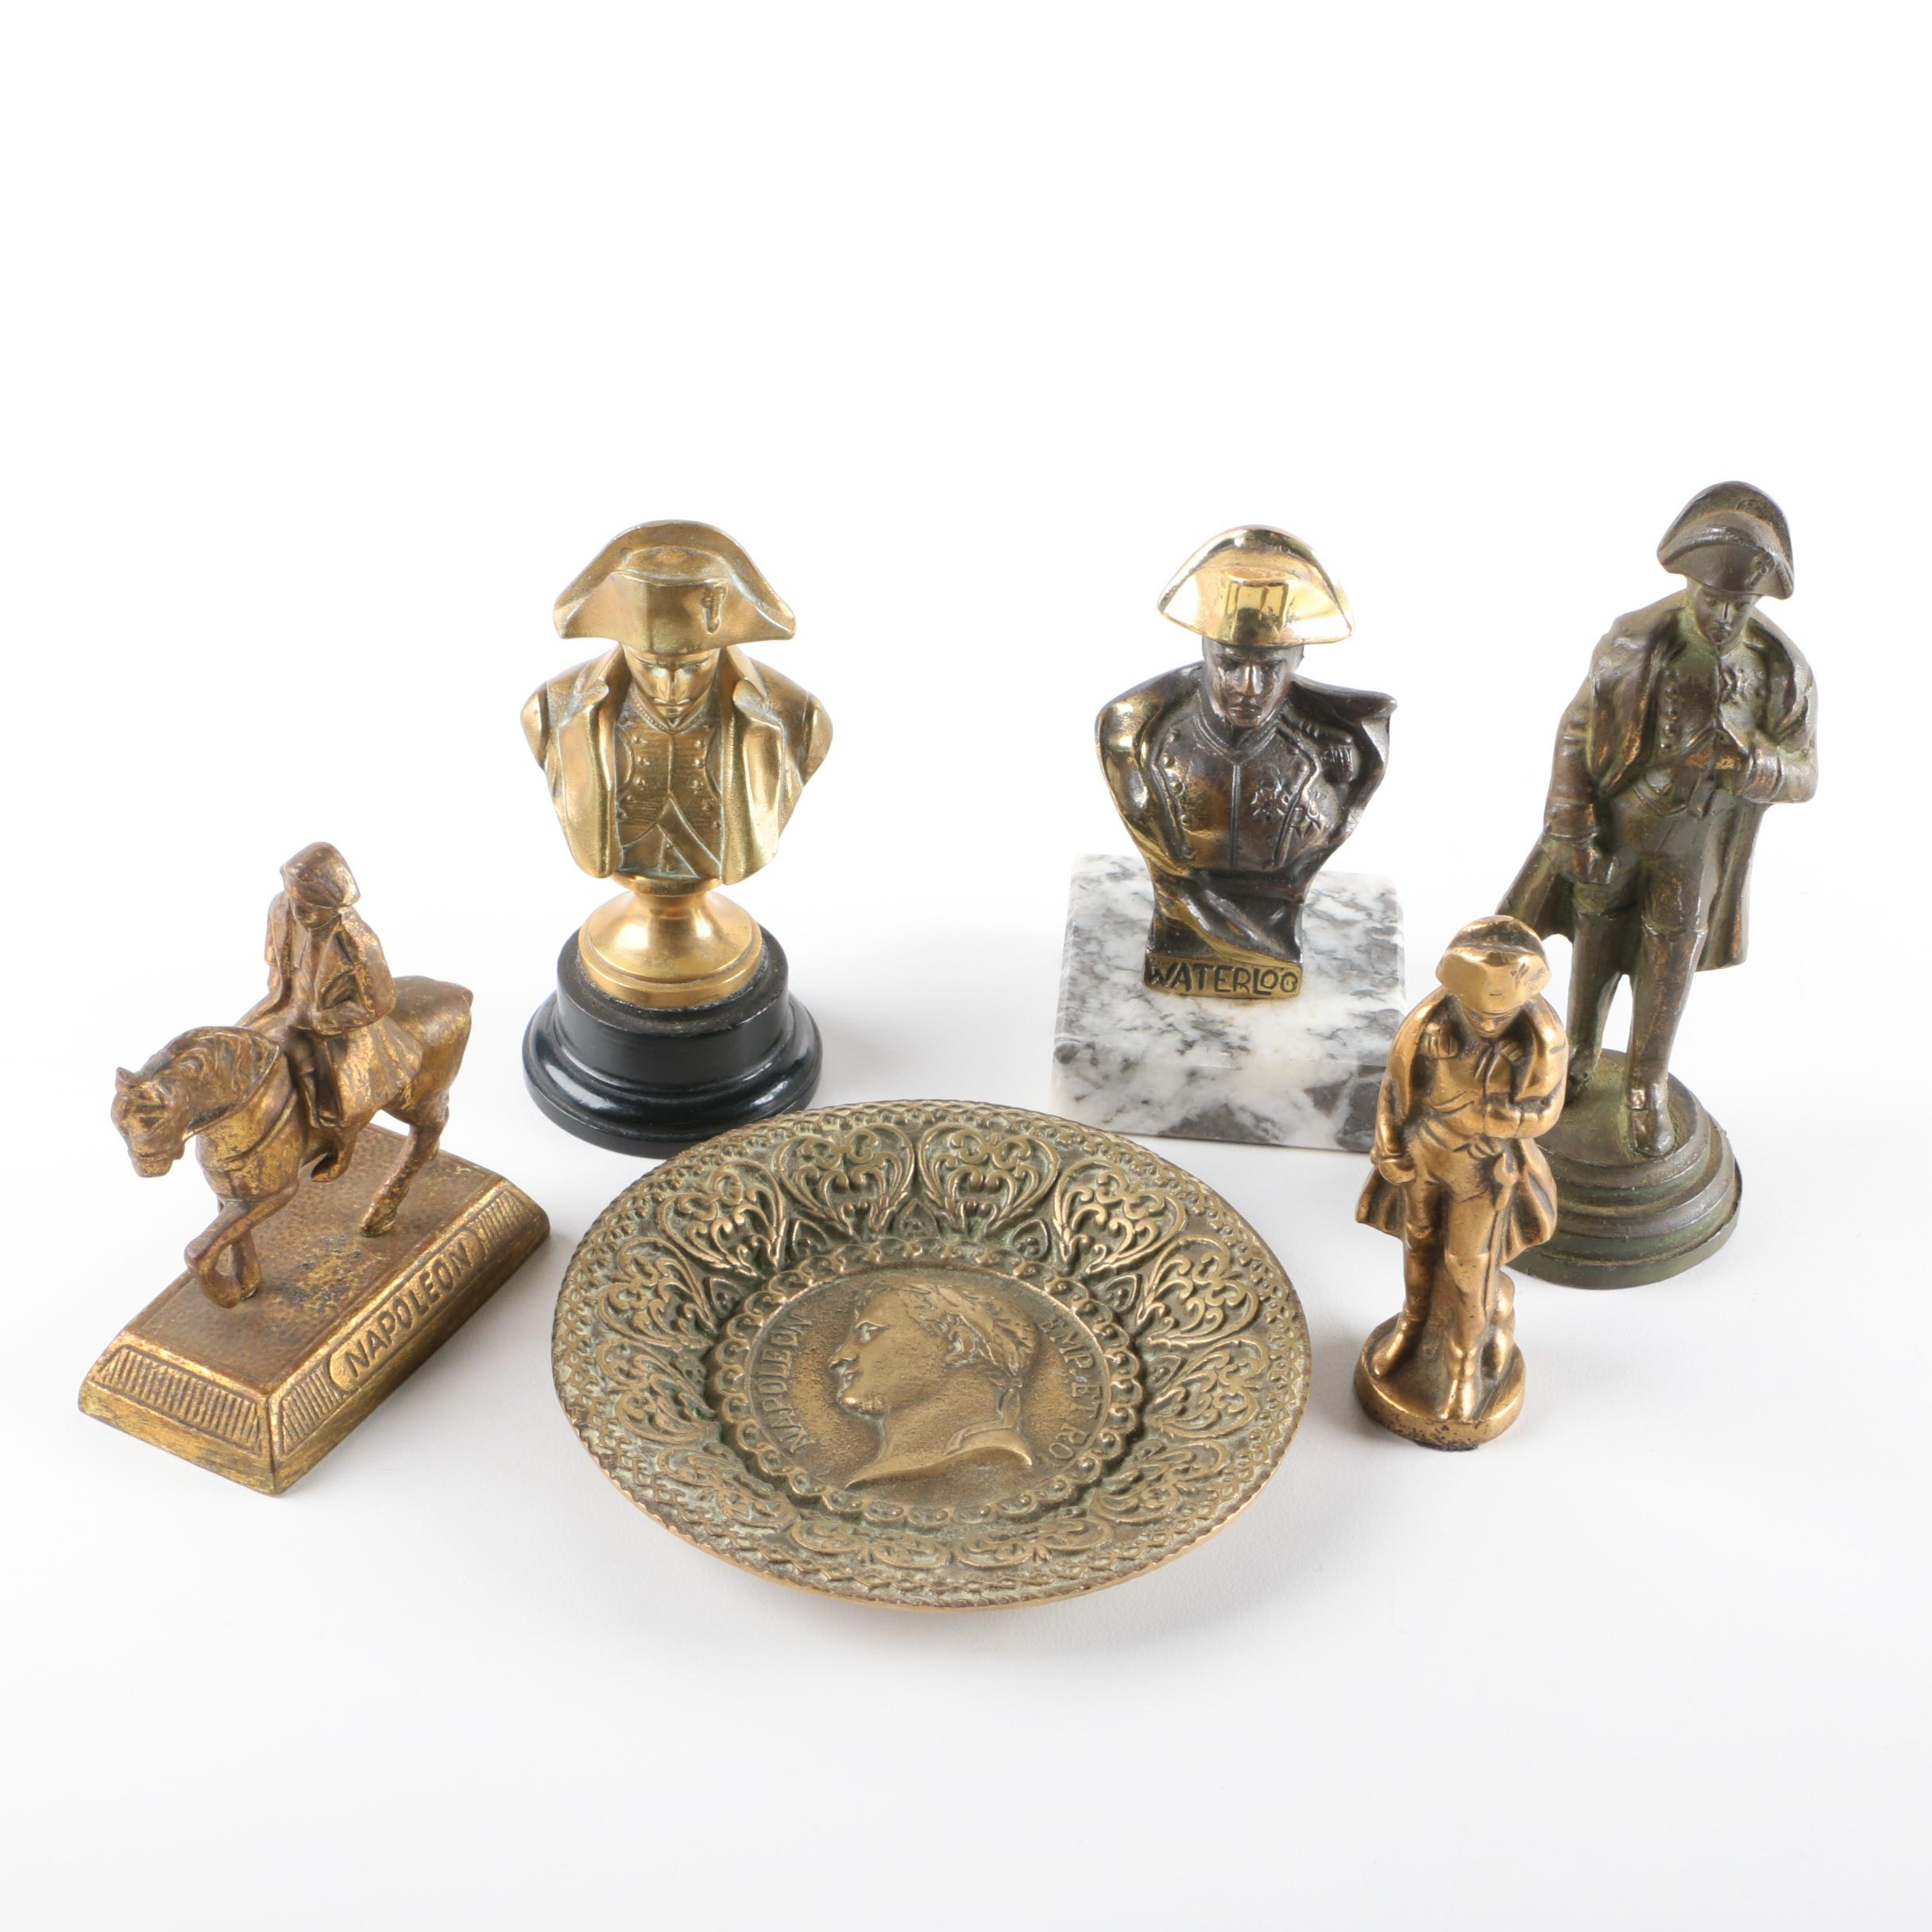 Brass Napoleon Figurines and Decorative Bowl